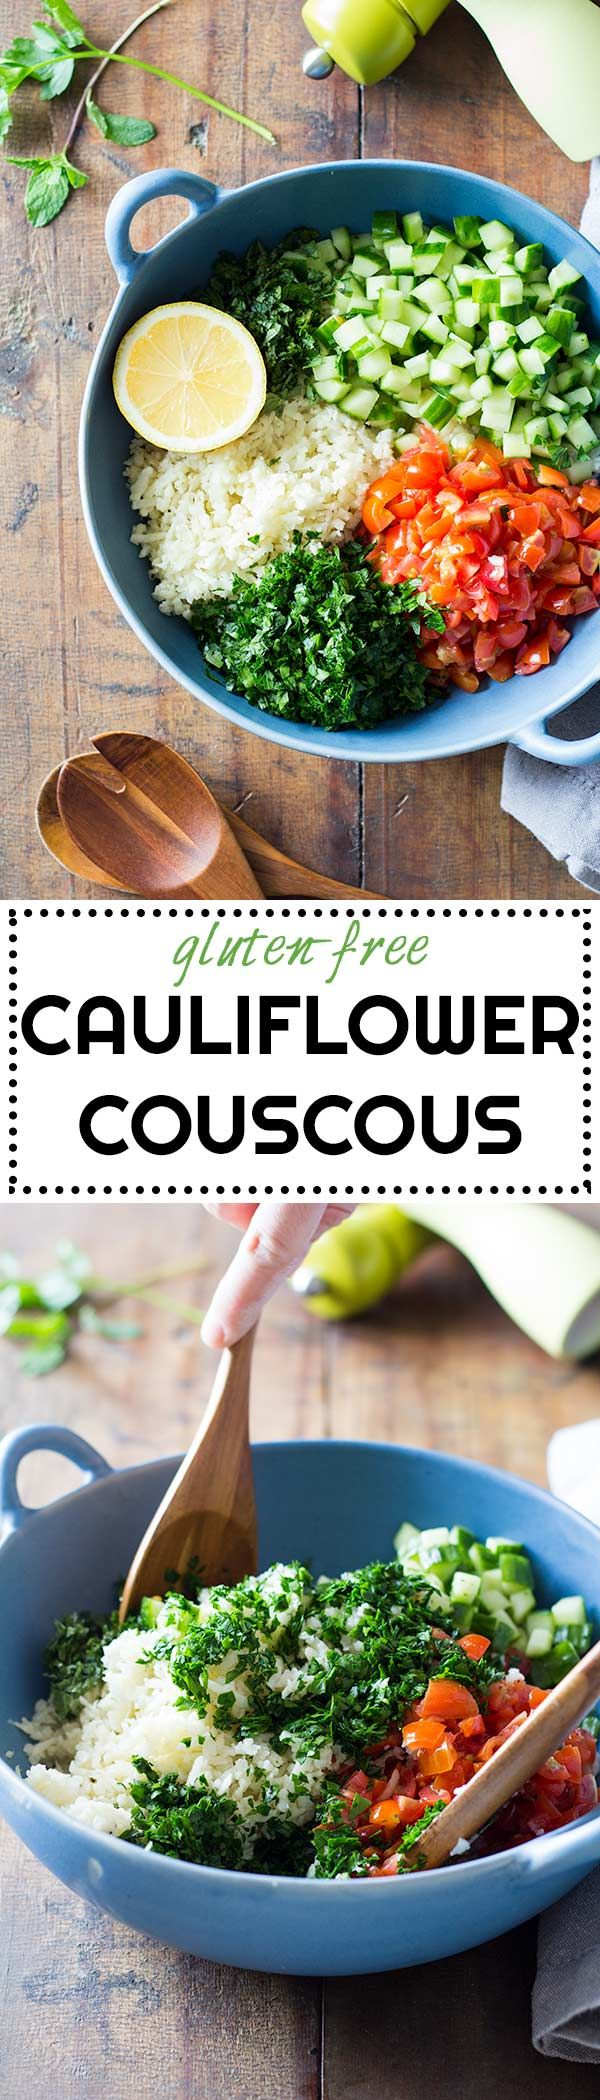 A gluten-free version of my beloved Lebanese tabbouleh: Cauliflower Couscous. An extraordinary way to add in more veggies into your diet and spice them up in a delicious way. via @greenhealthycoo